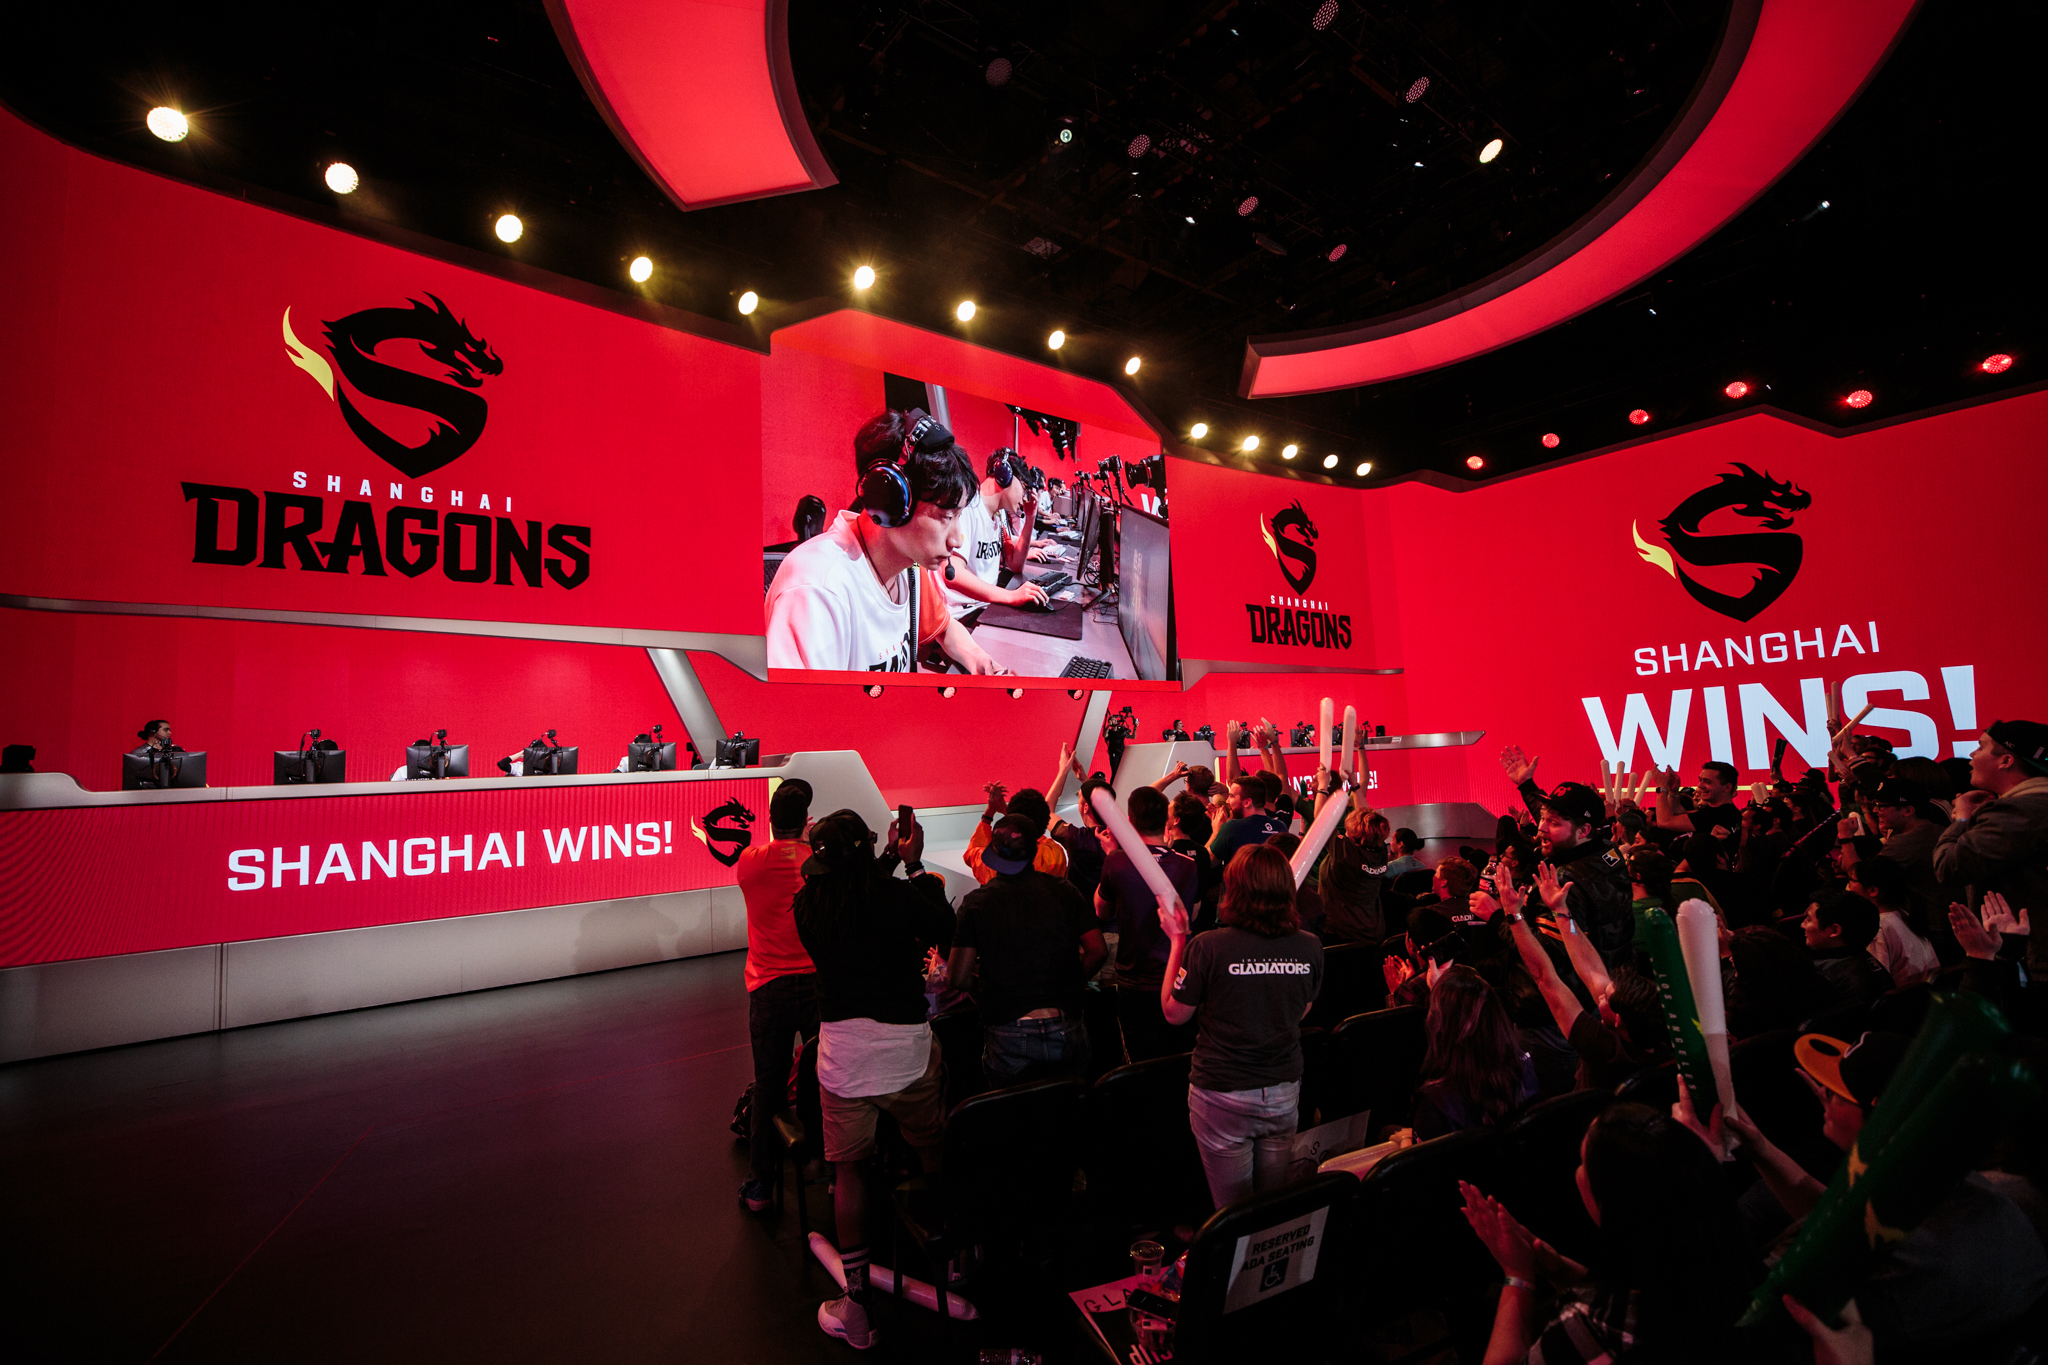 The Shanghai Dragons have won their first Overwatch League match